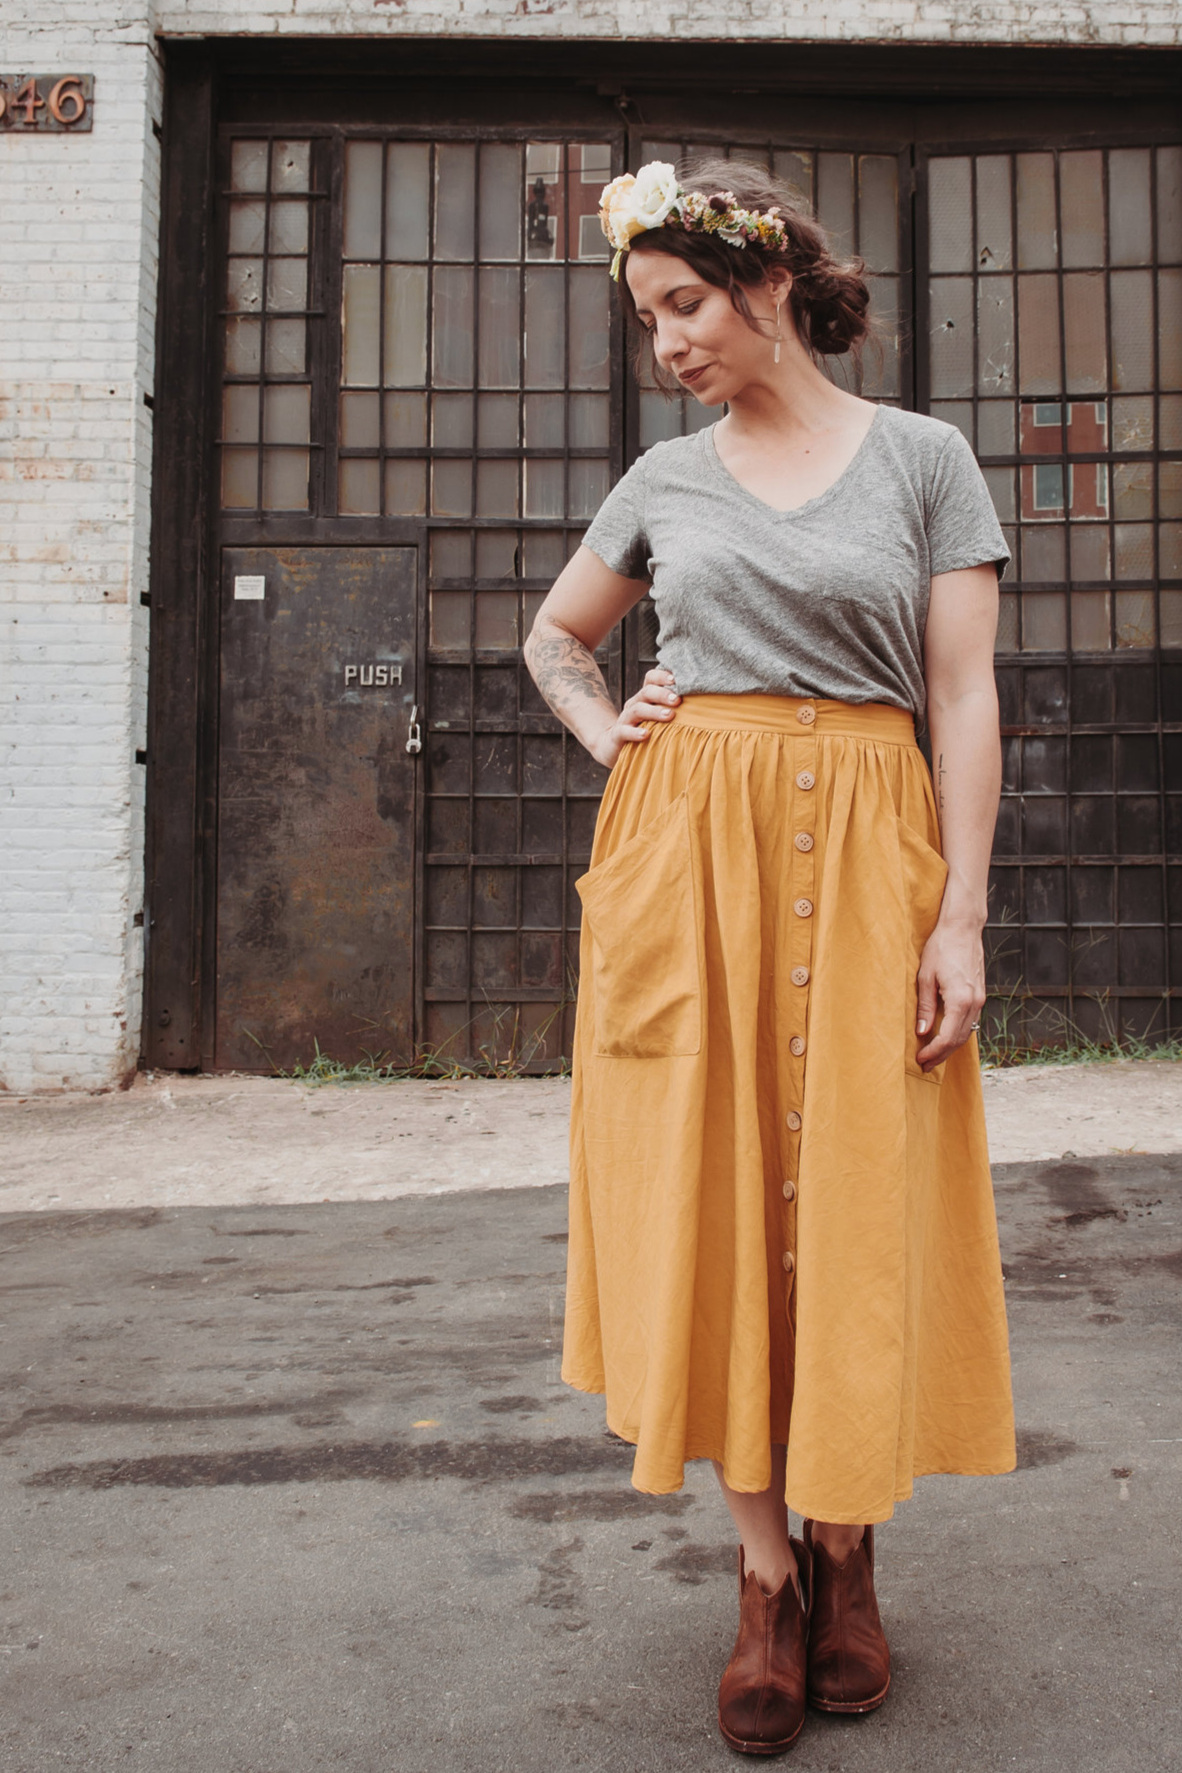 Estuary Skirt from Sew Liberated